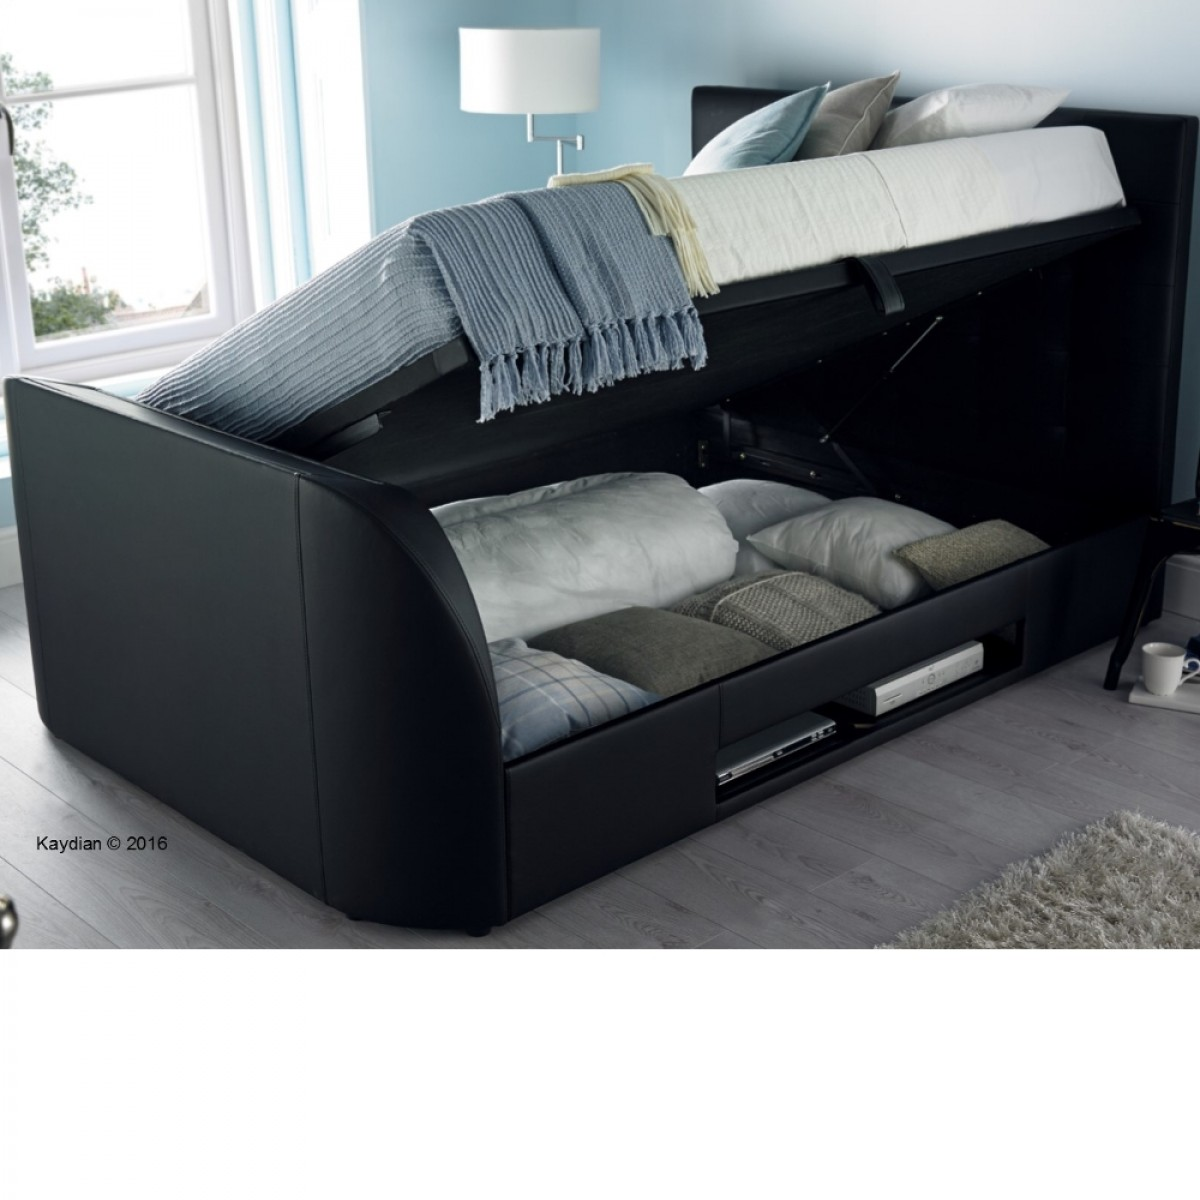 Barnard Black Leather TV Ottoman Storage Bed